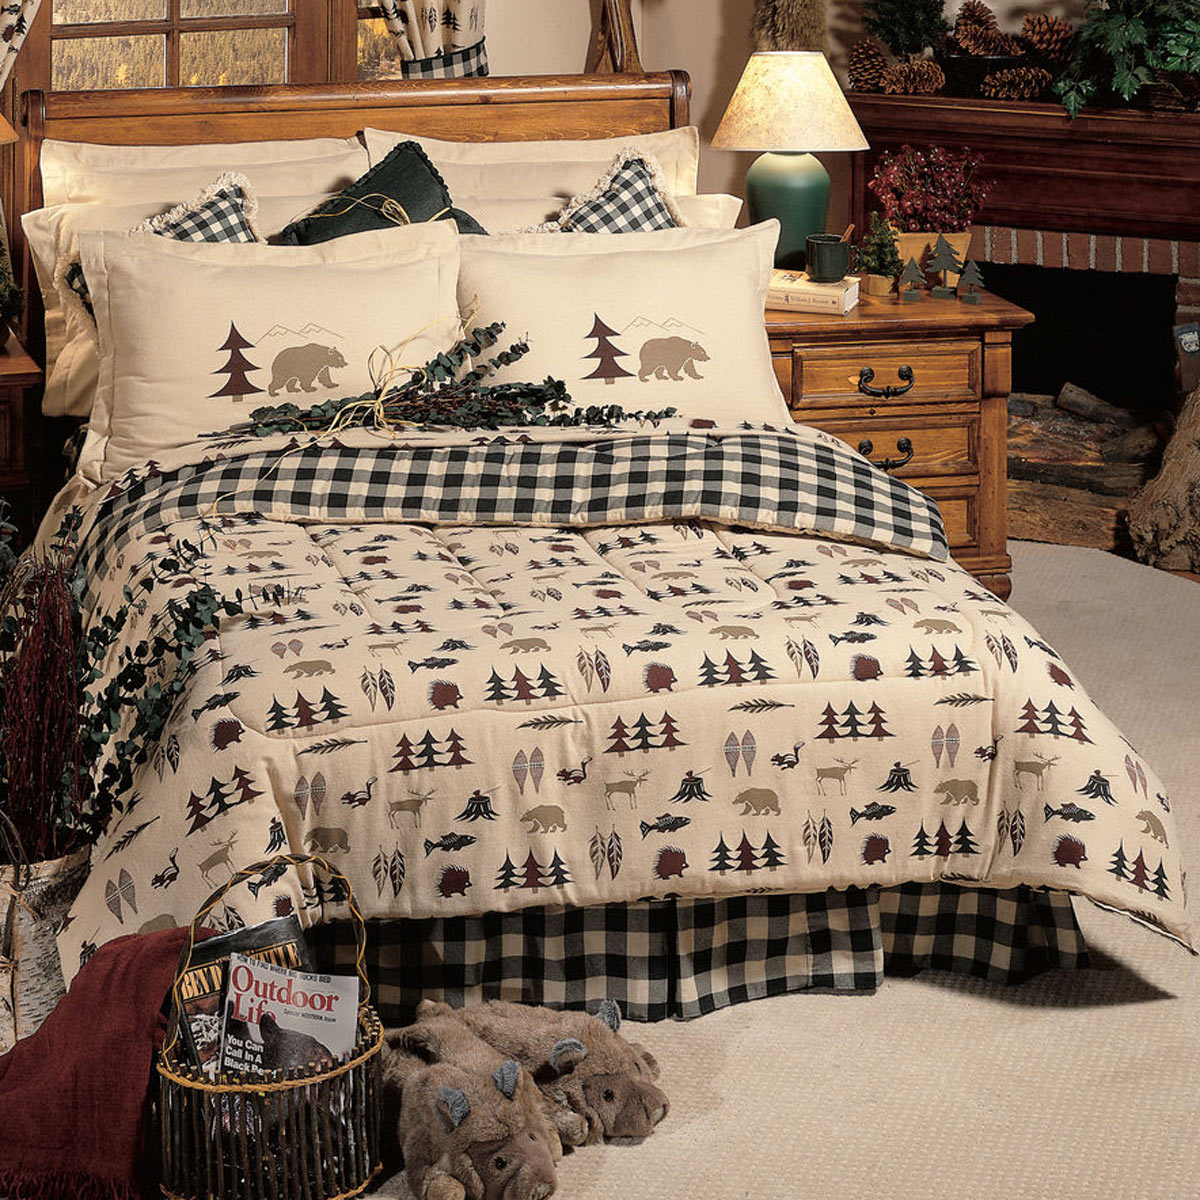 Black Forest Decor Northern exposure comforter set - king